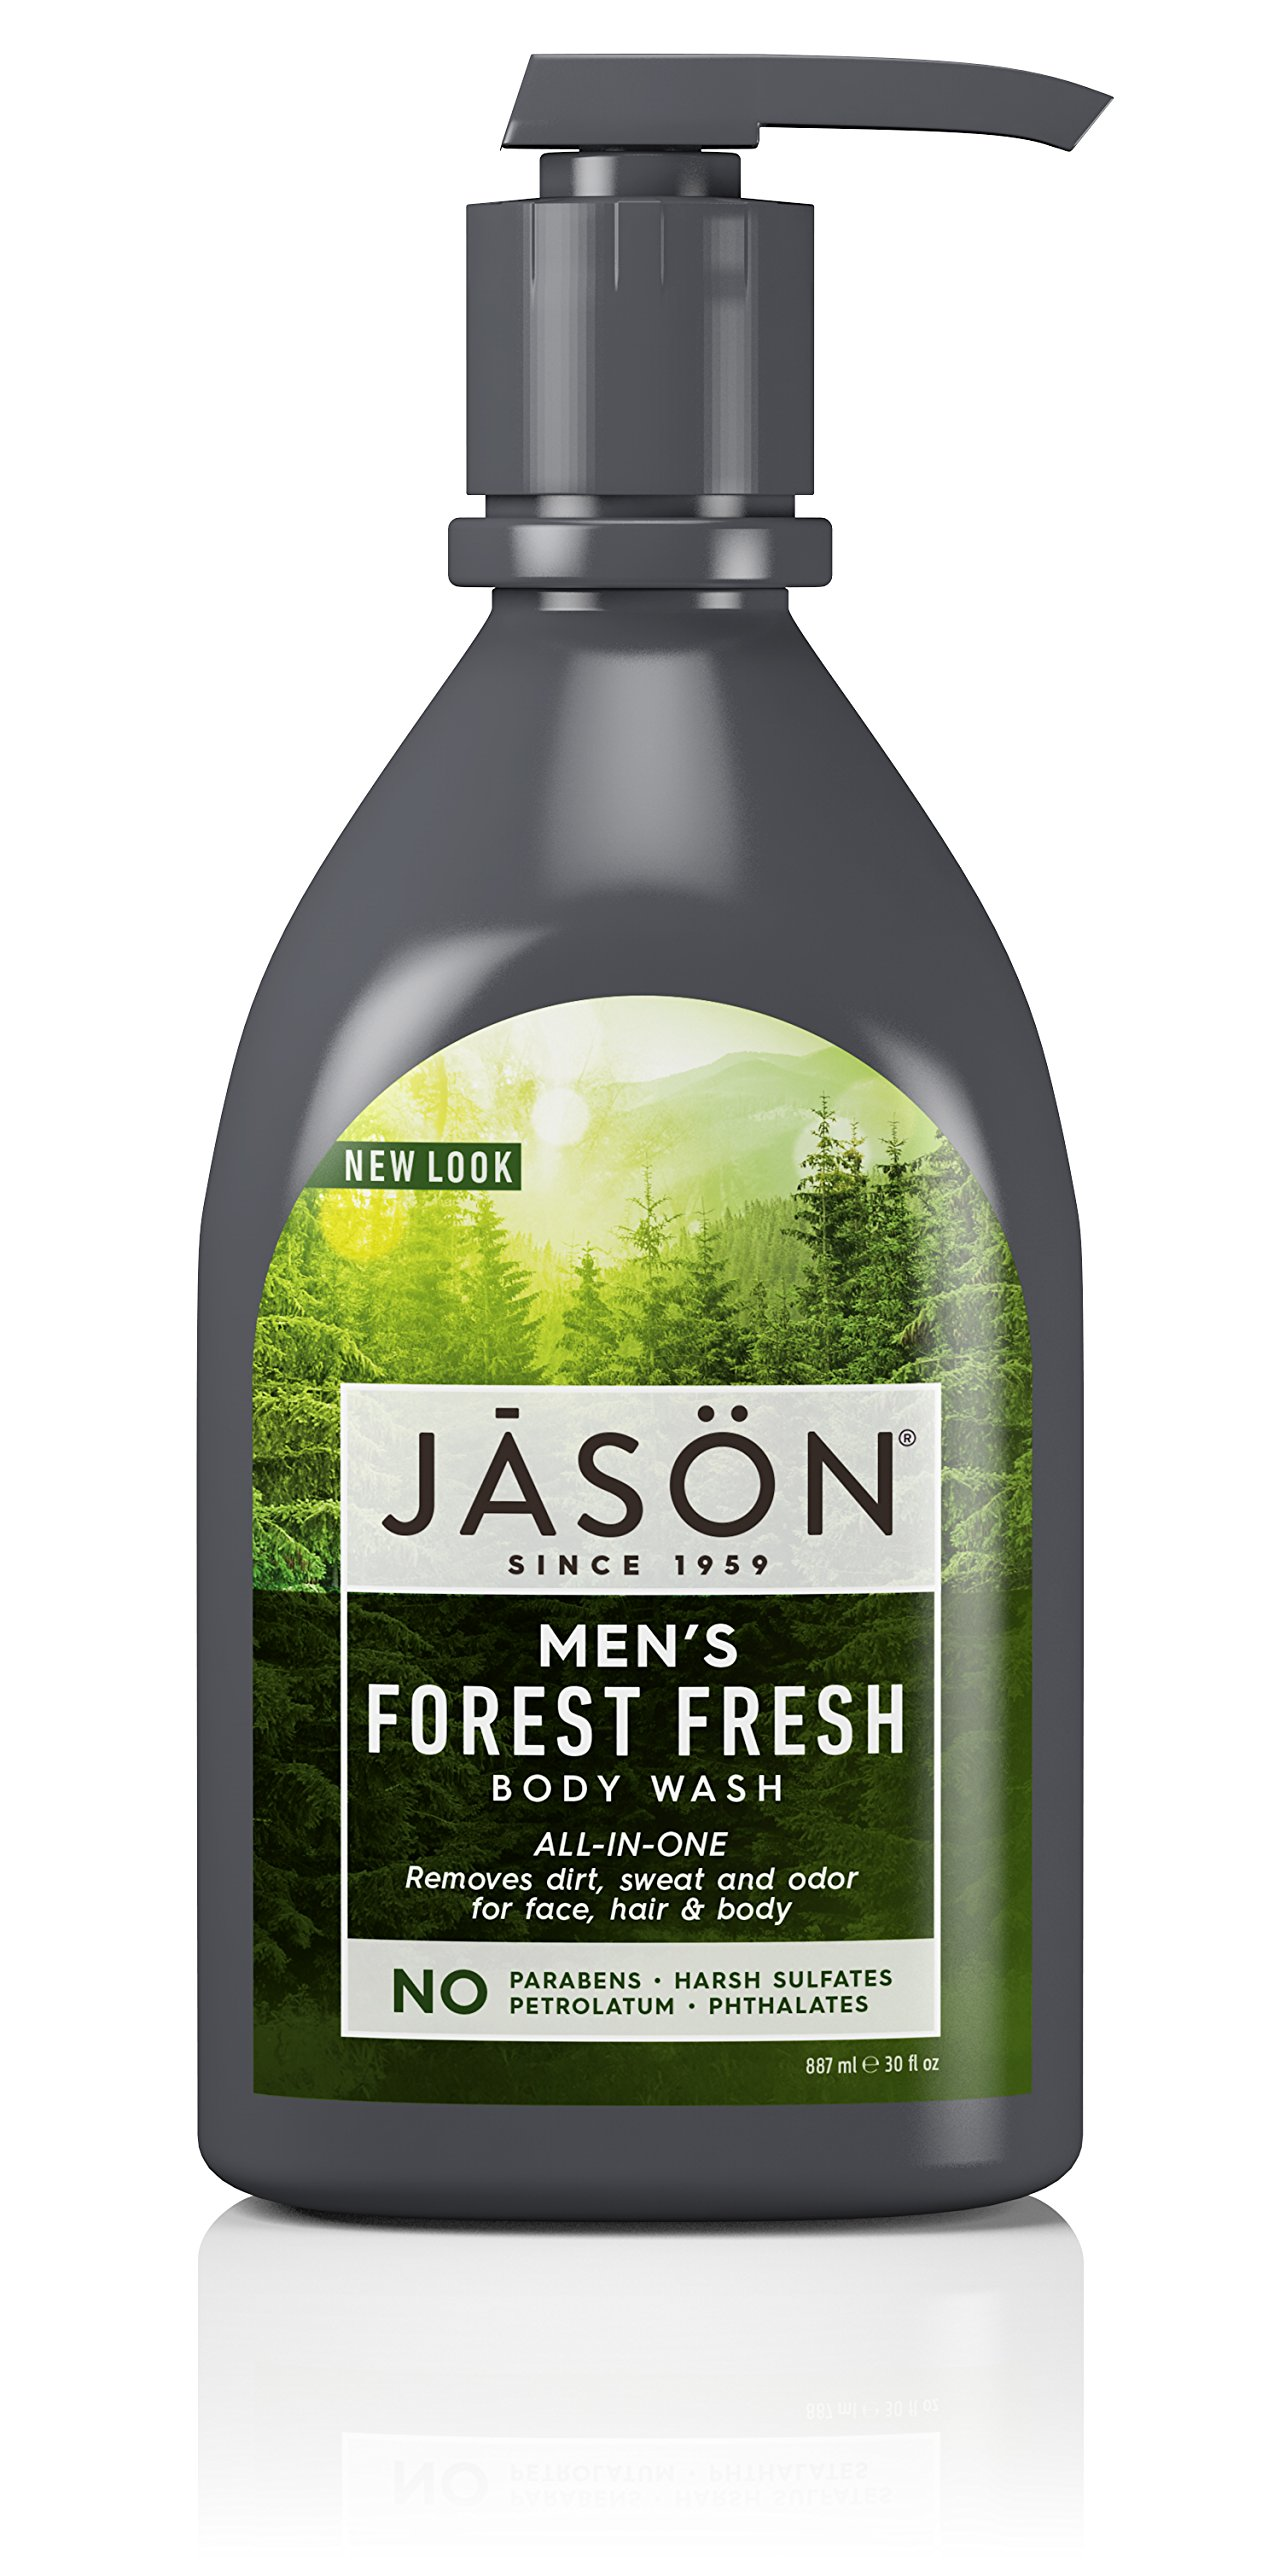 JASON Men's All-in-One Body Wash, 30 Fl Oz (Packaging May Vary)